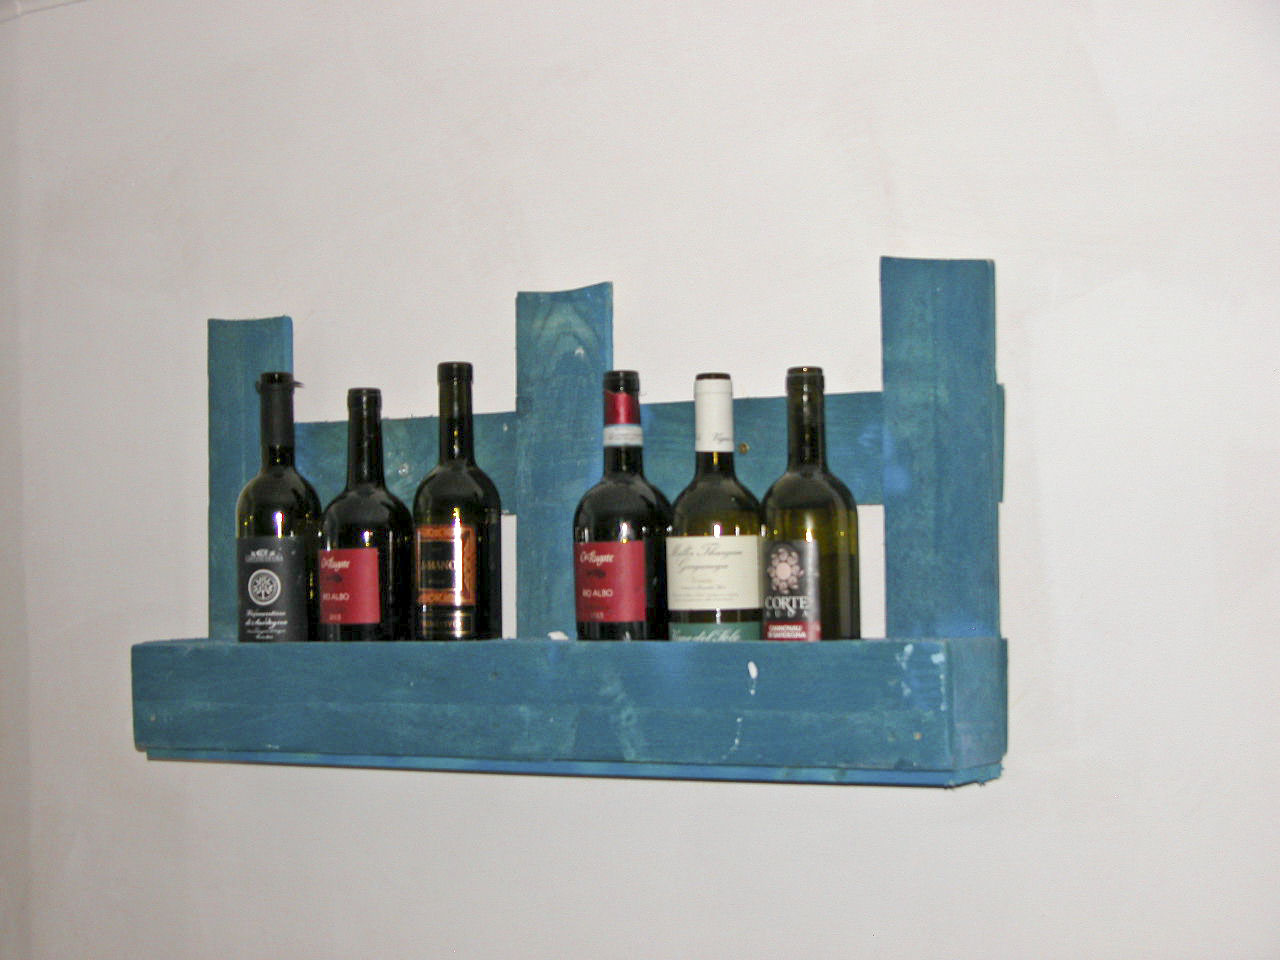 Super arredo bar e pub - mobili in pallet OF12